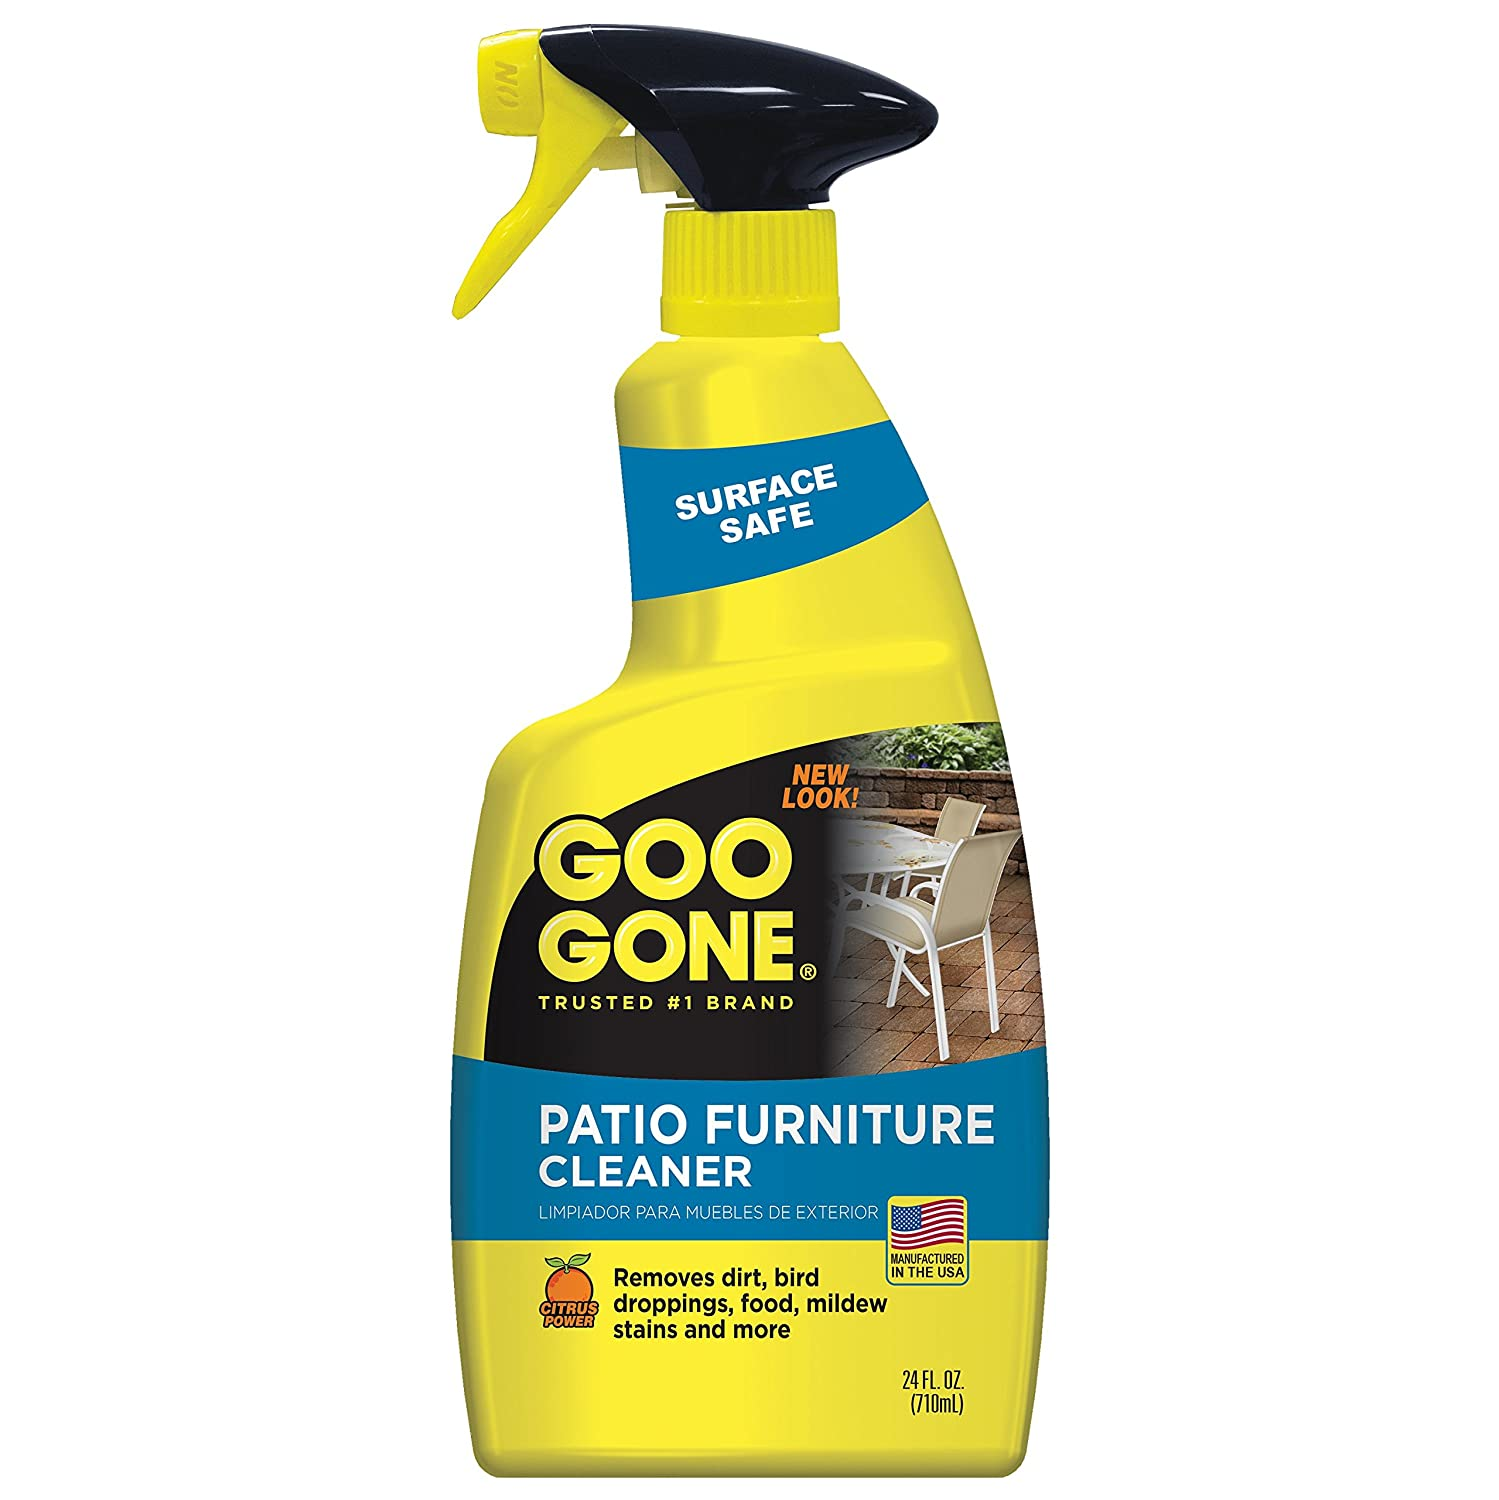 Amazon Goo Gone Patio Furniture Cleaner Removes Dirt Bird